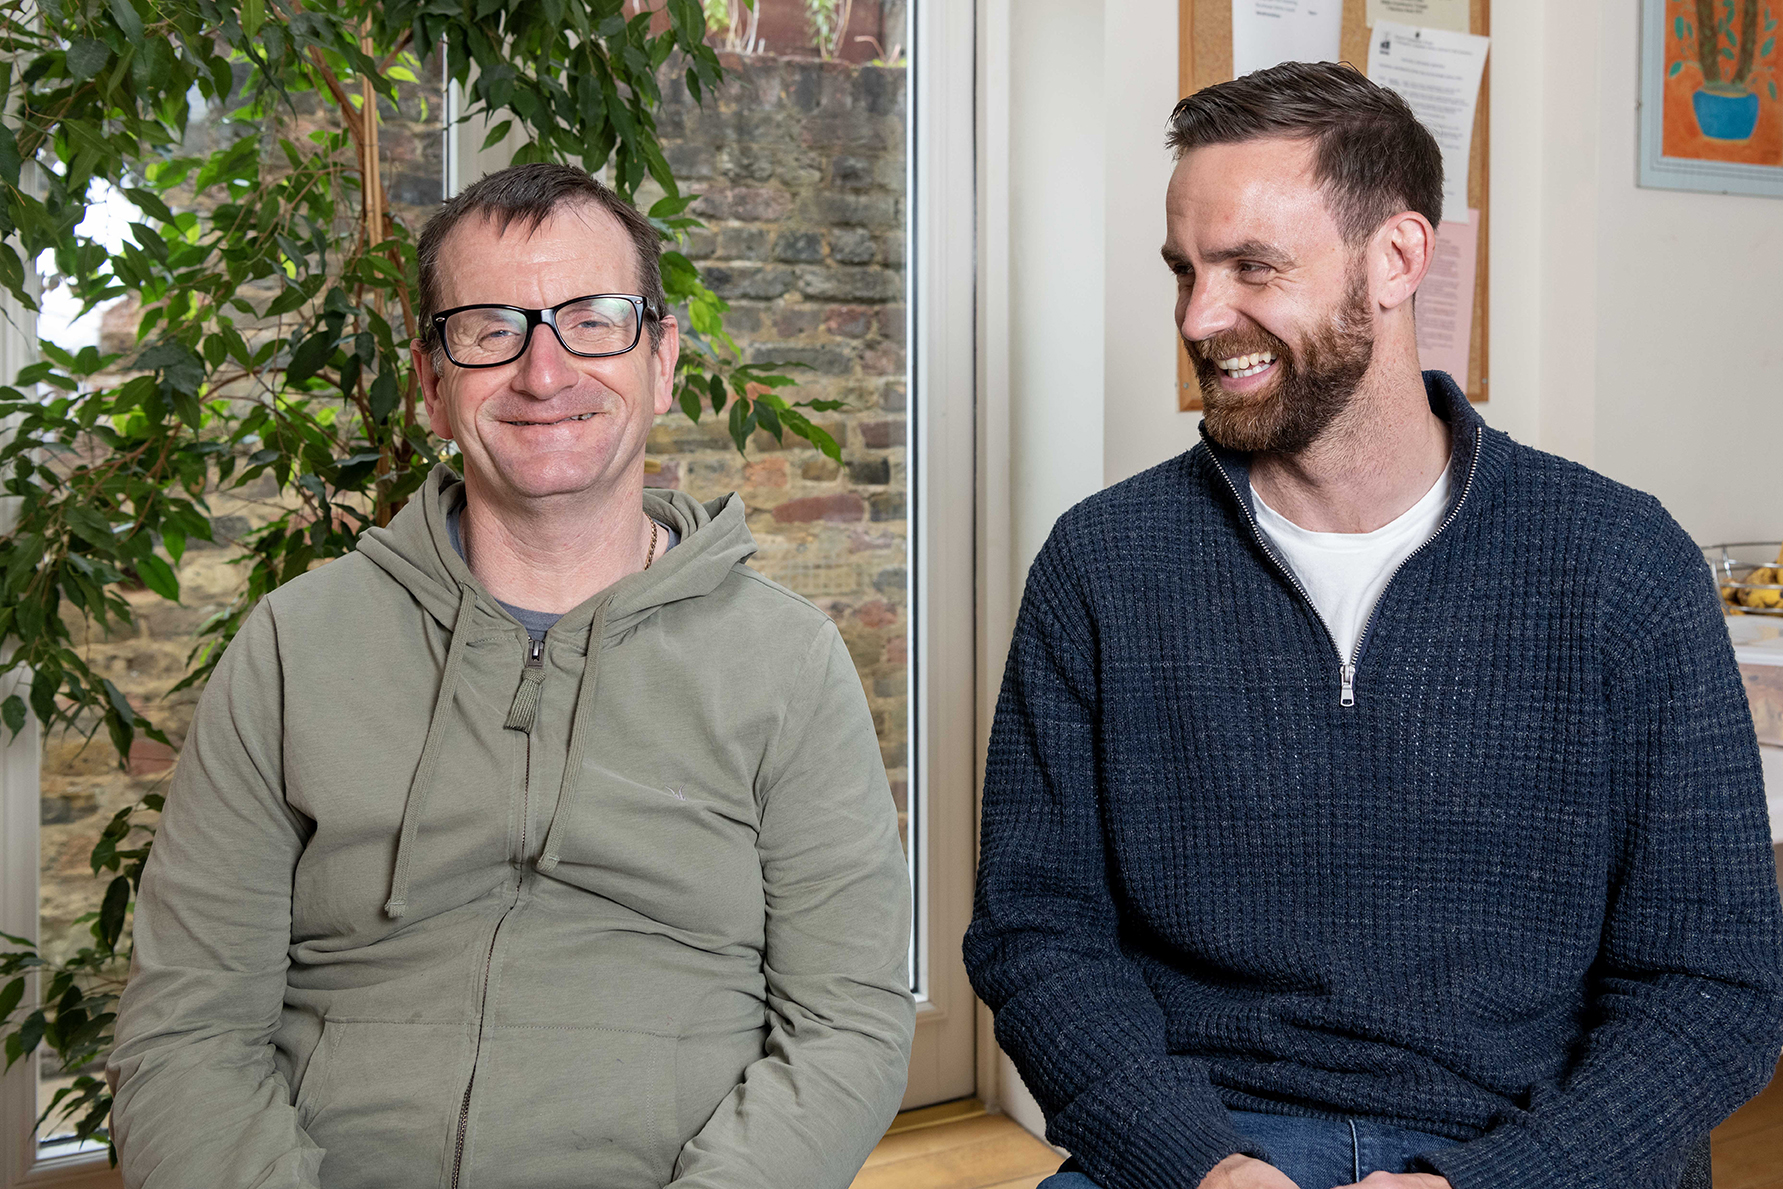 New faces at Linden Grove: support workers Mick McCulloch and Danny Cruse